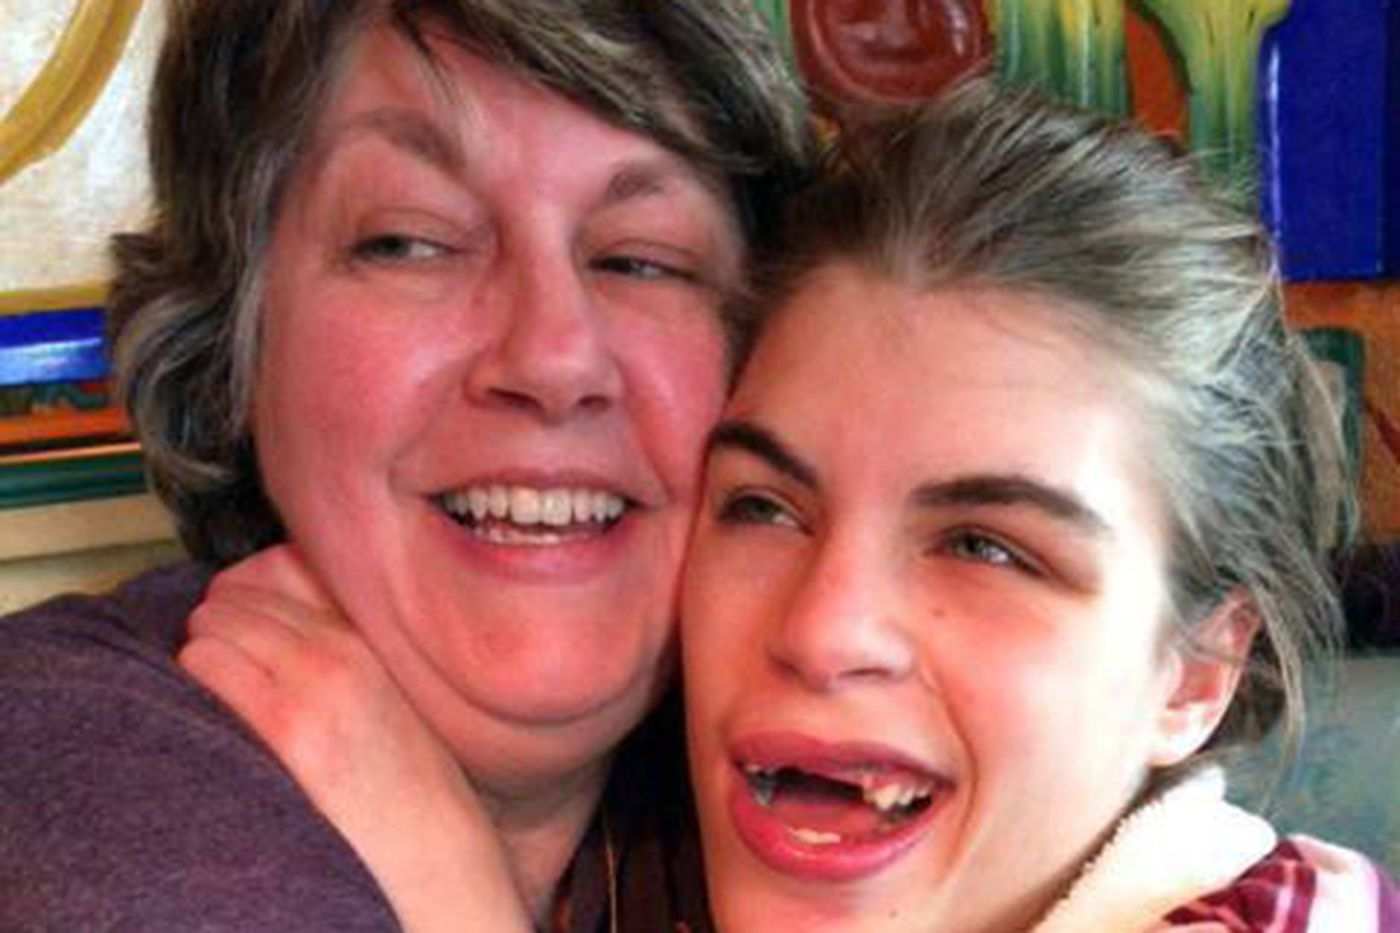 Medical marijuana costs too much for Pa. mom who fought for her daughter's epilepsy treatment